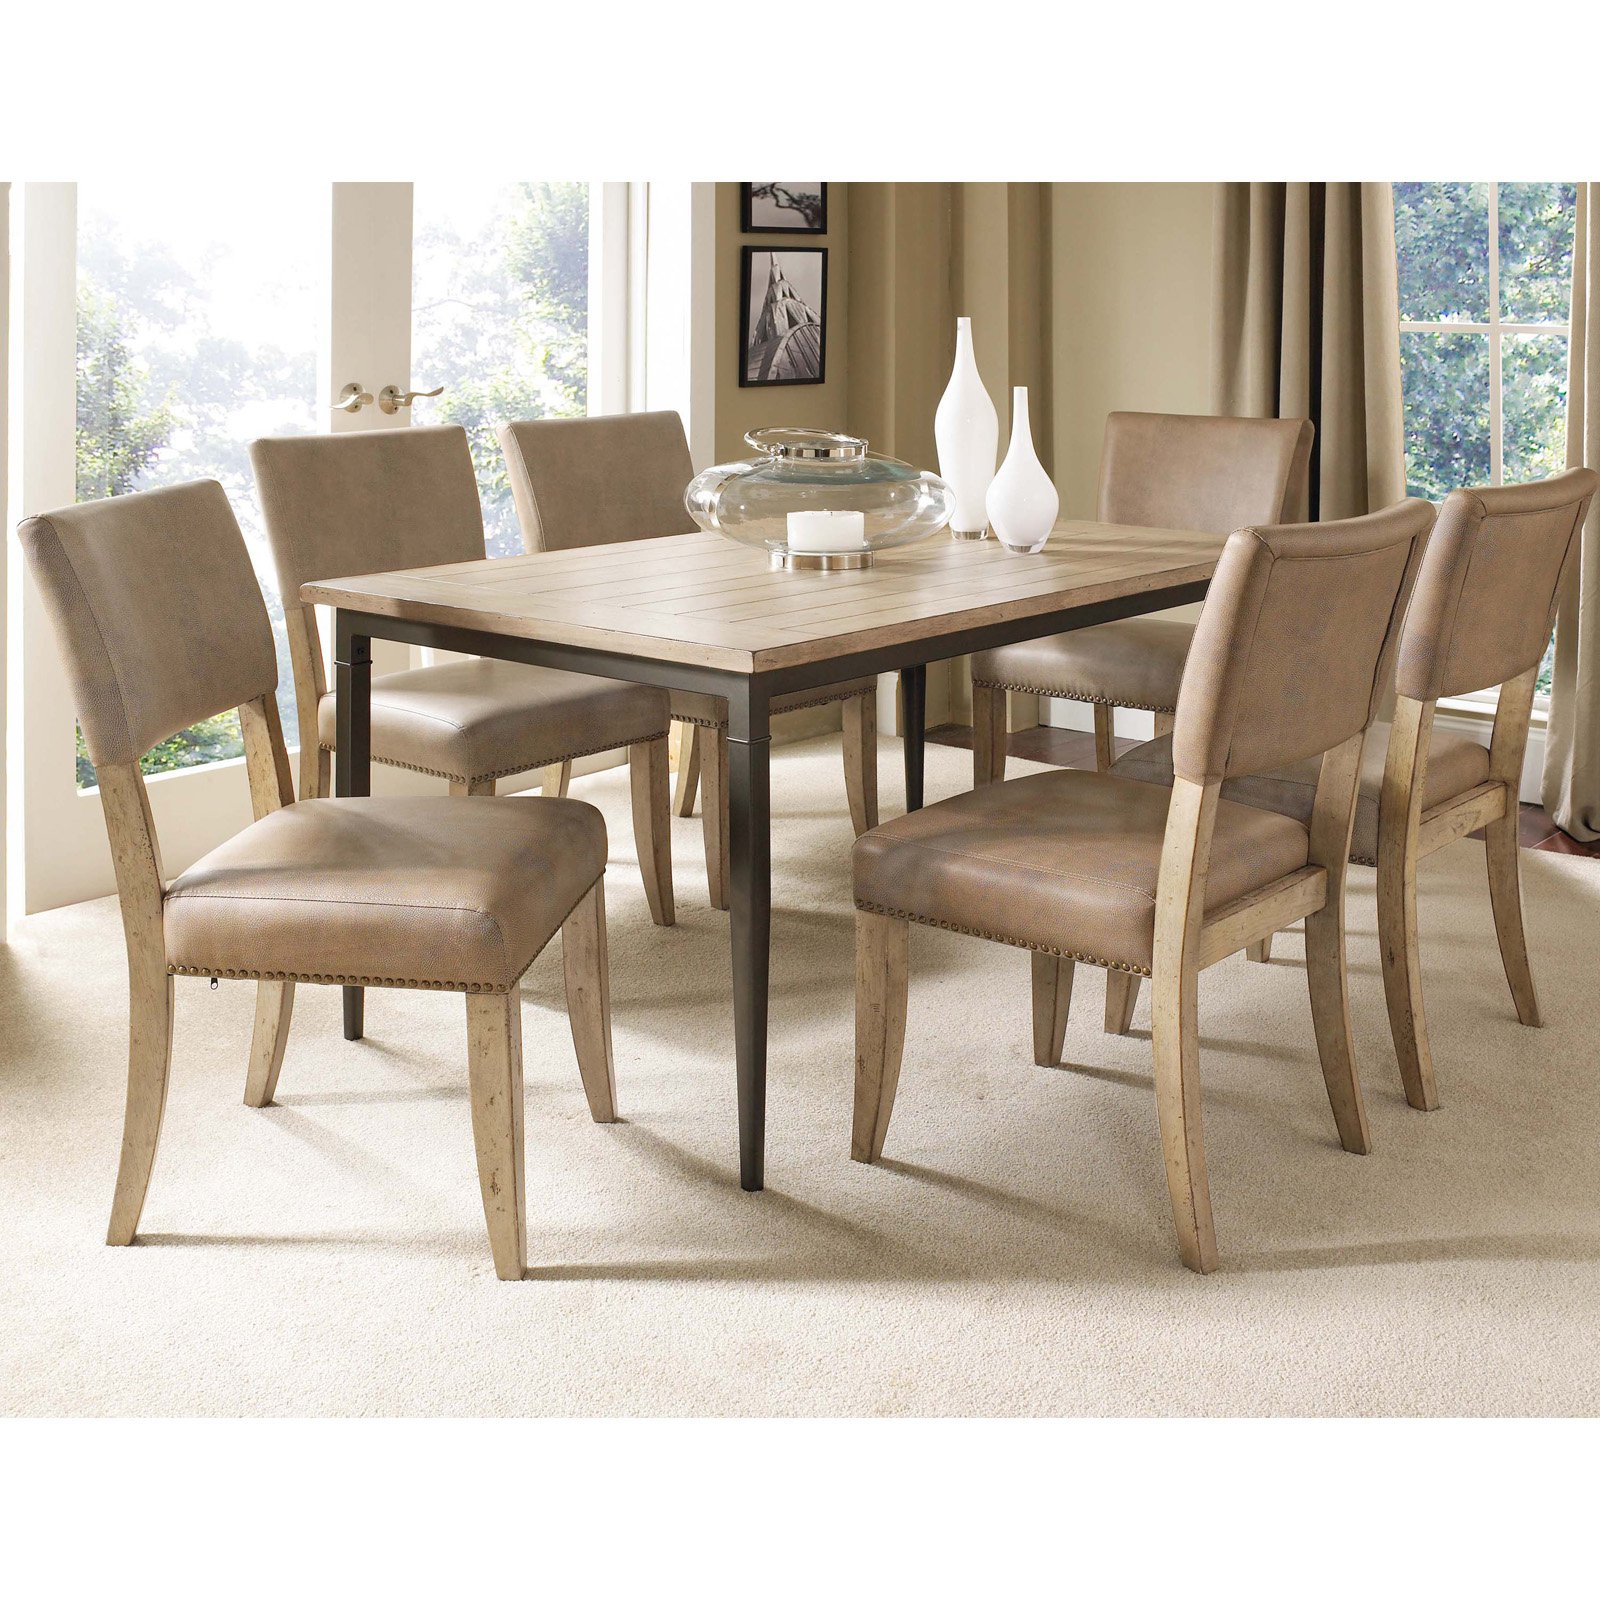 Hillsdale Charleston 7 Piece Rectangle Desert Tan Wood Dining Set with Parson Chairs